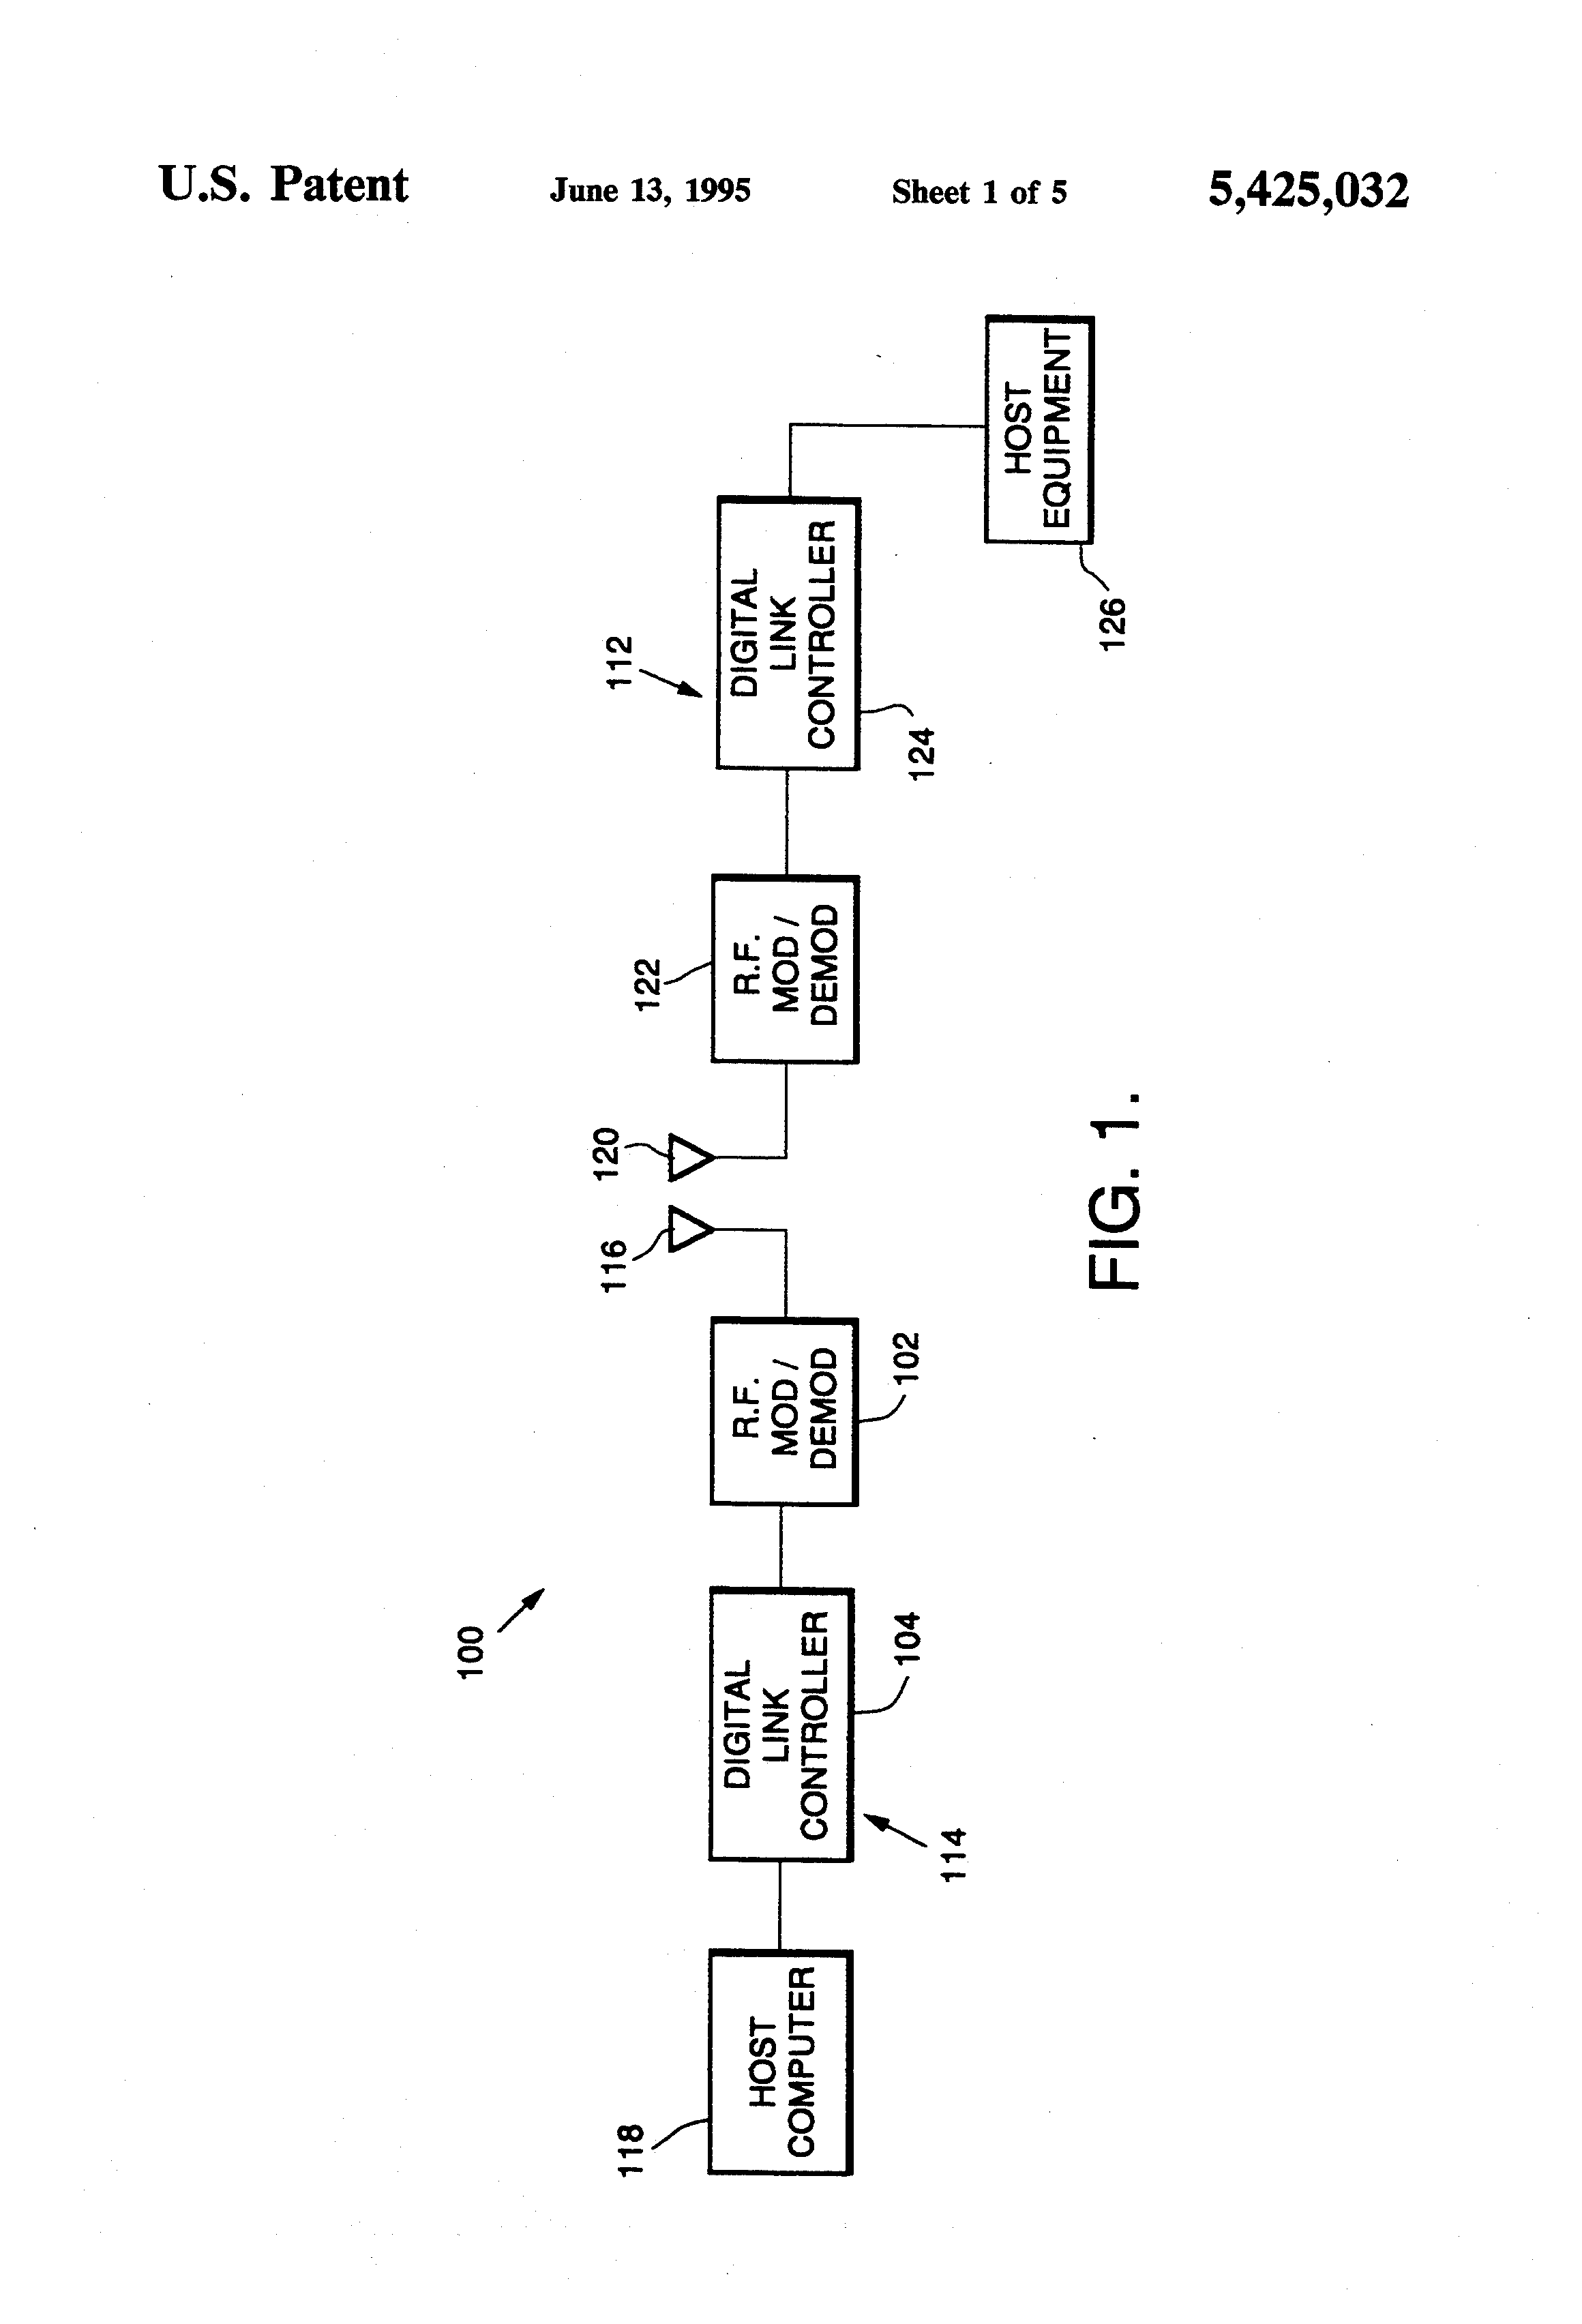 Highfrequency Oscillator Circuit Diagram Tradeoficcom Simple Voltage Controlled Patent Us5425032 Tdma Network And Protocol For Reader Transponder